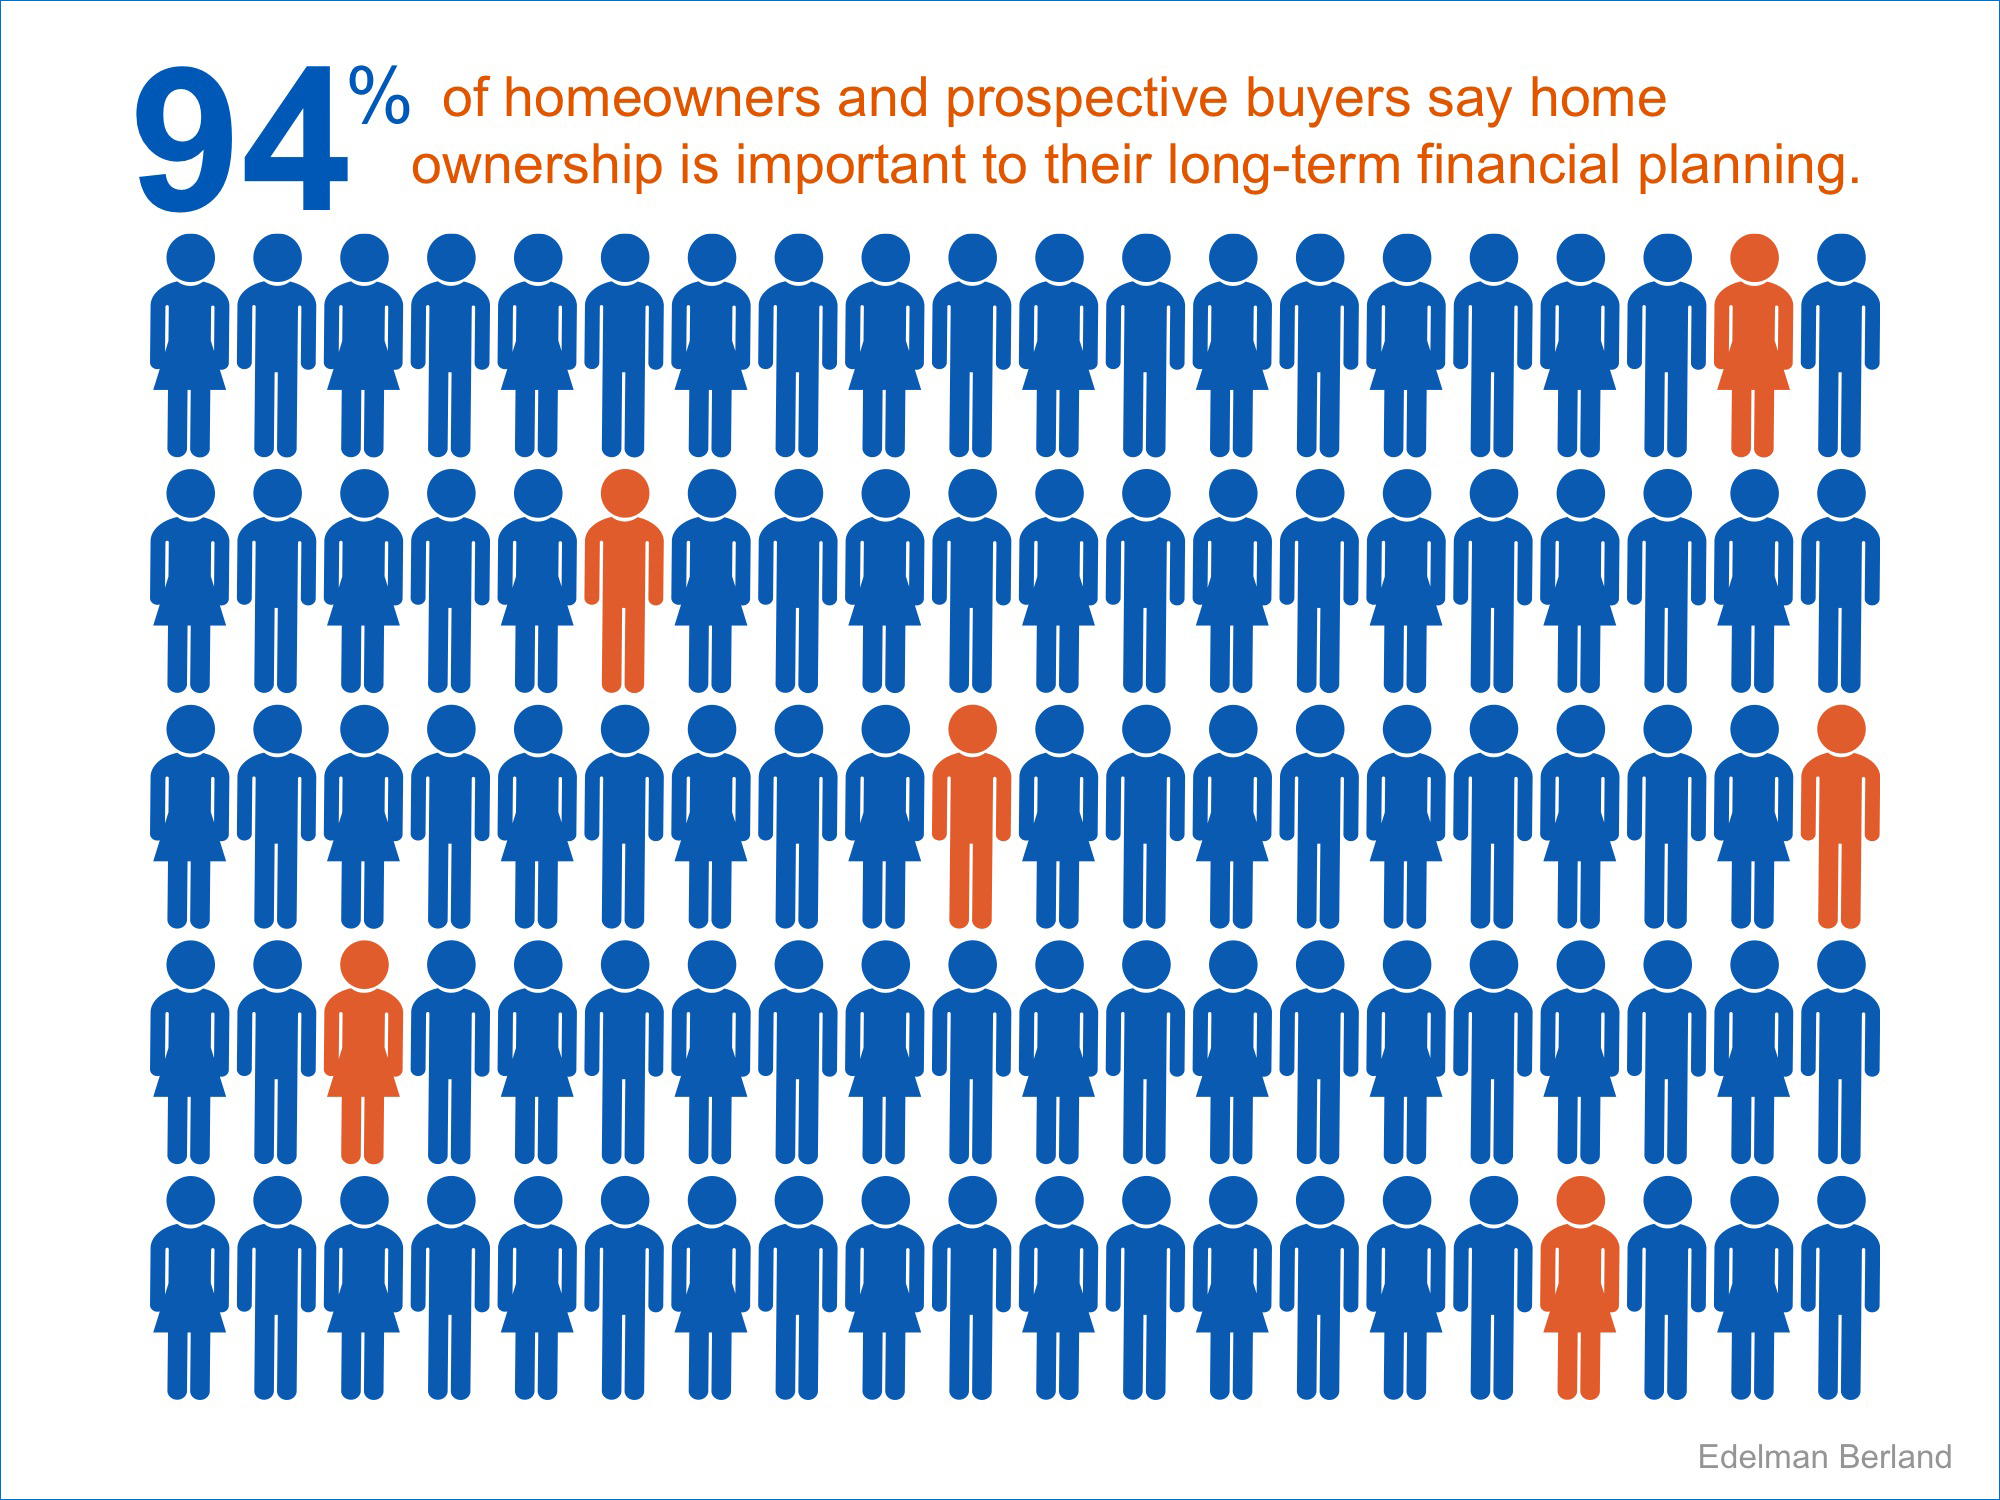 Homeownership Important to Long-Term Planning | Simplifying The Market